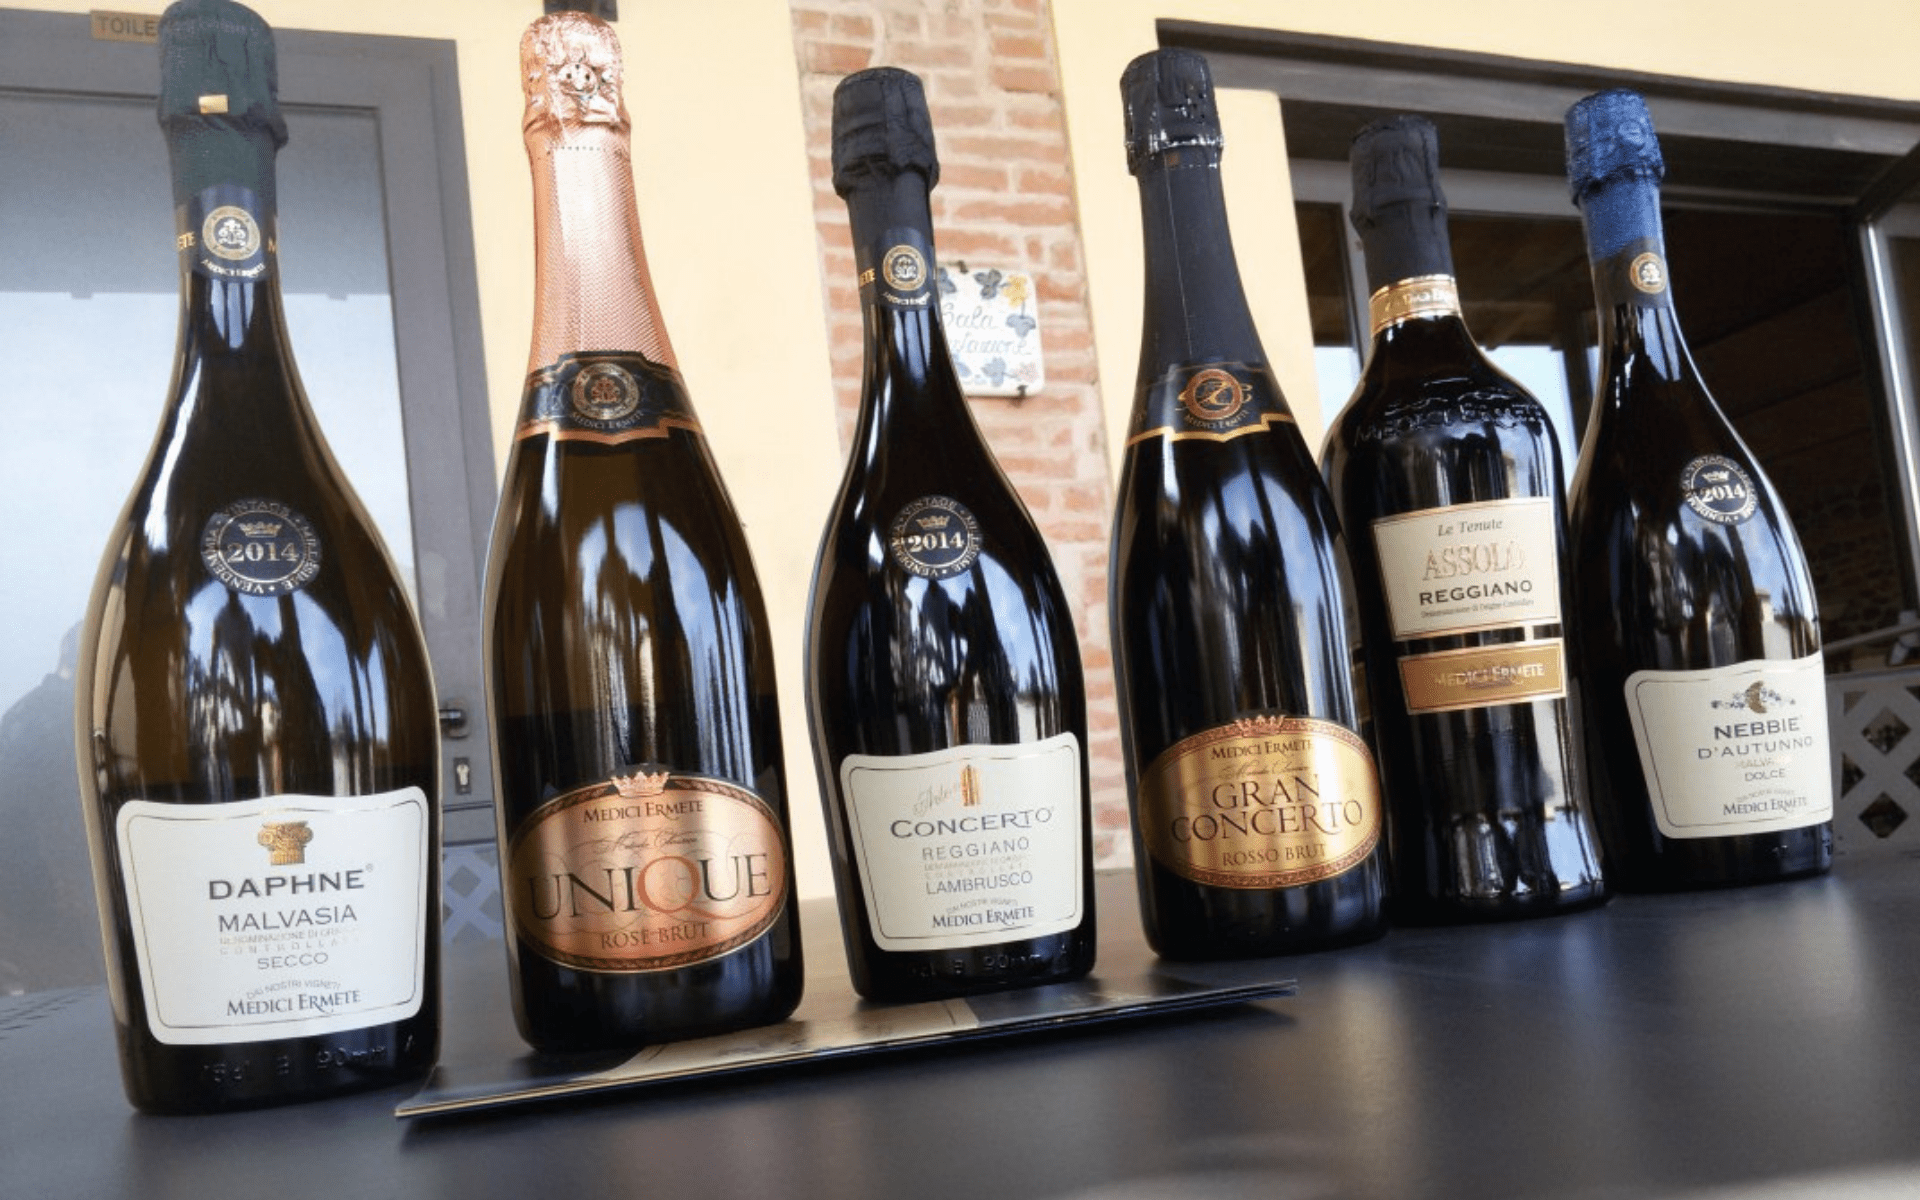 Medici Ermete producteur traditionnel de Lambrusco